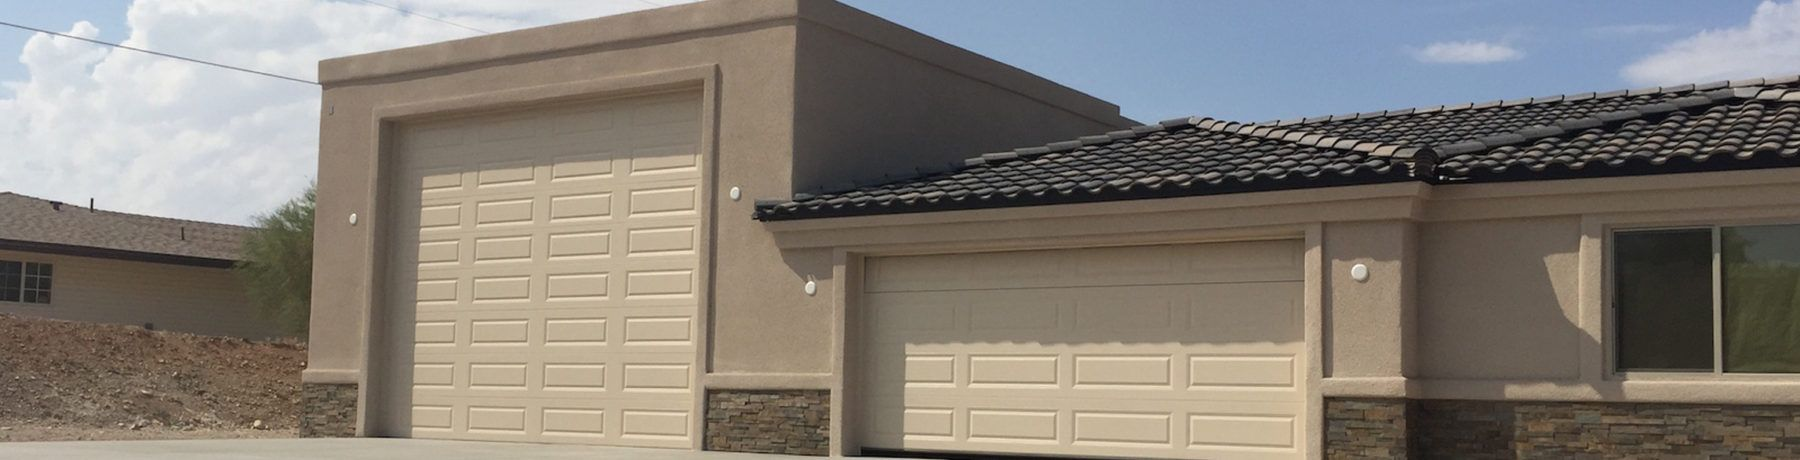 Phoenix Garage Door Repair Pros Parkers Doors More